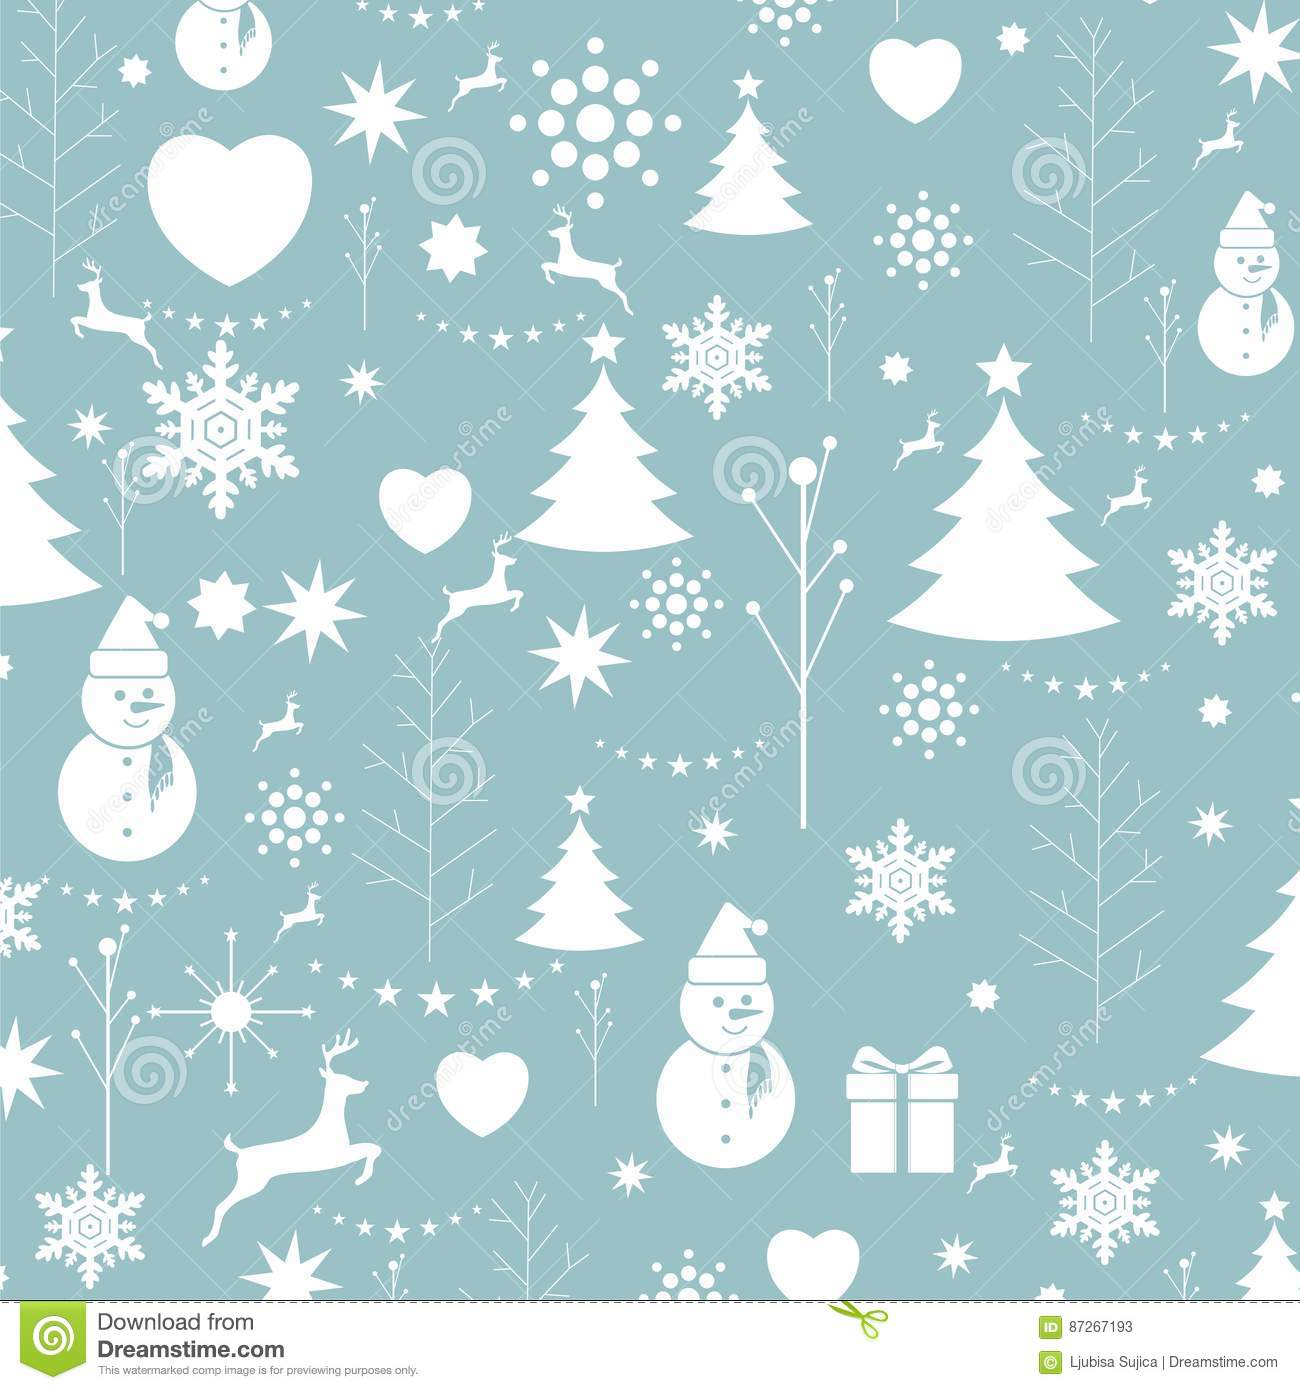 Christmas background, seamless tiling, great choice for wrapping